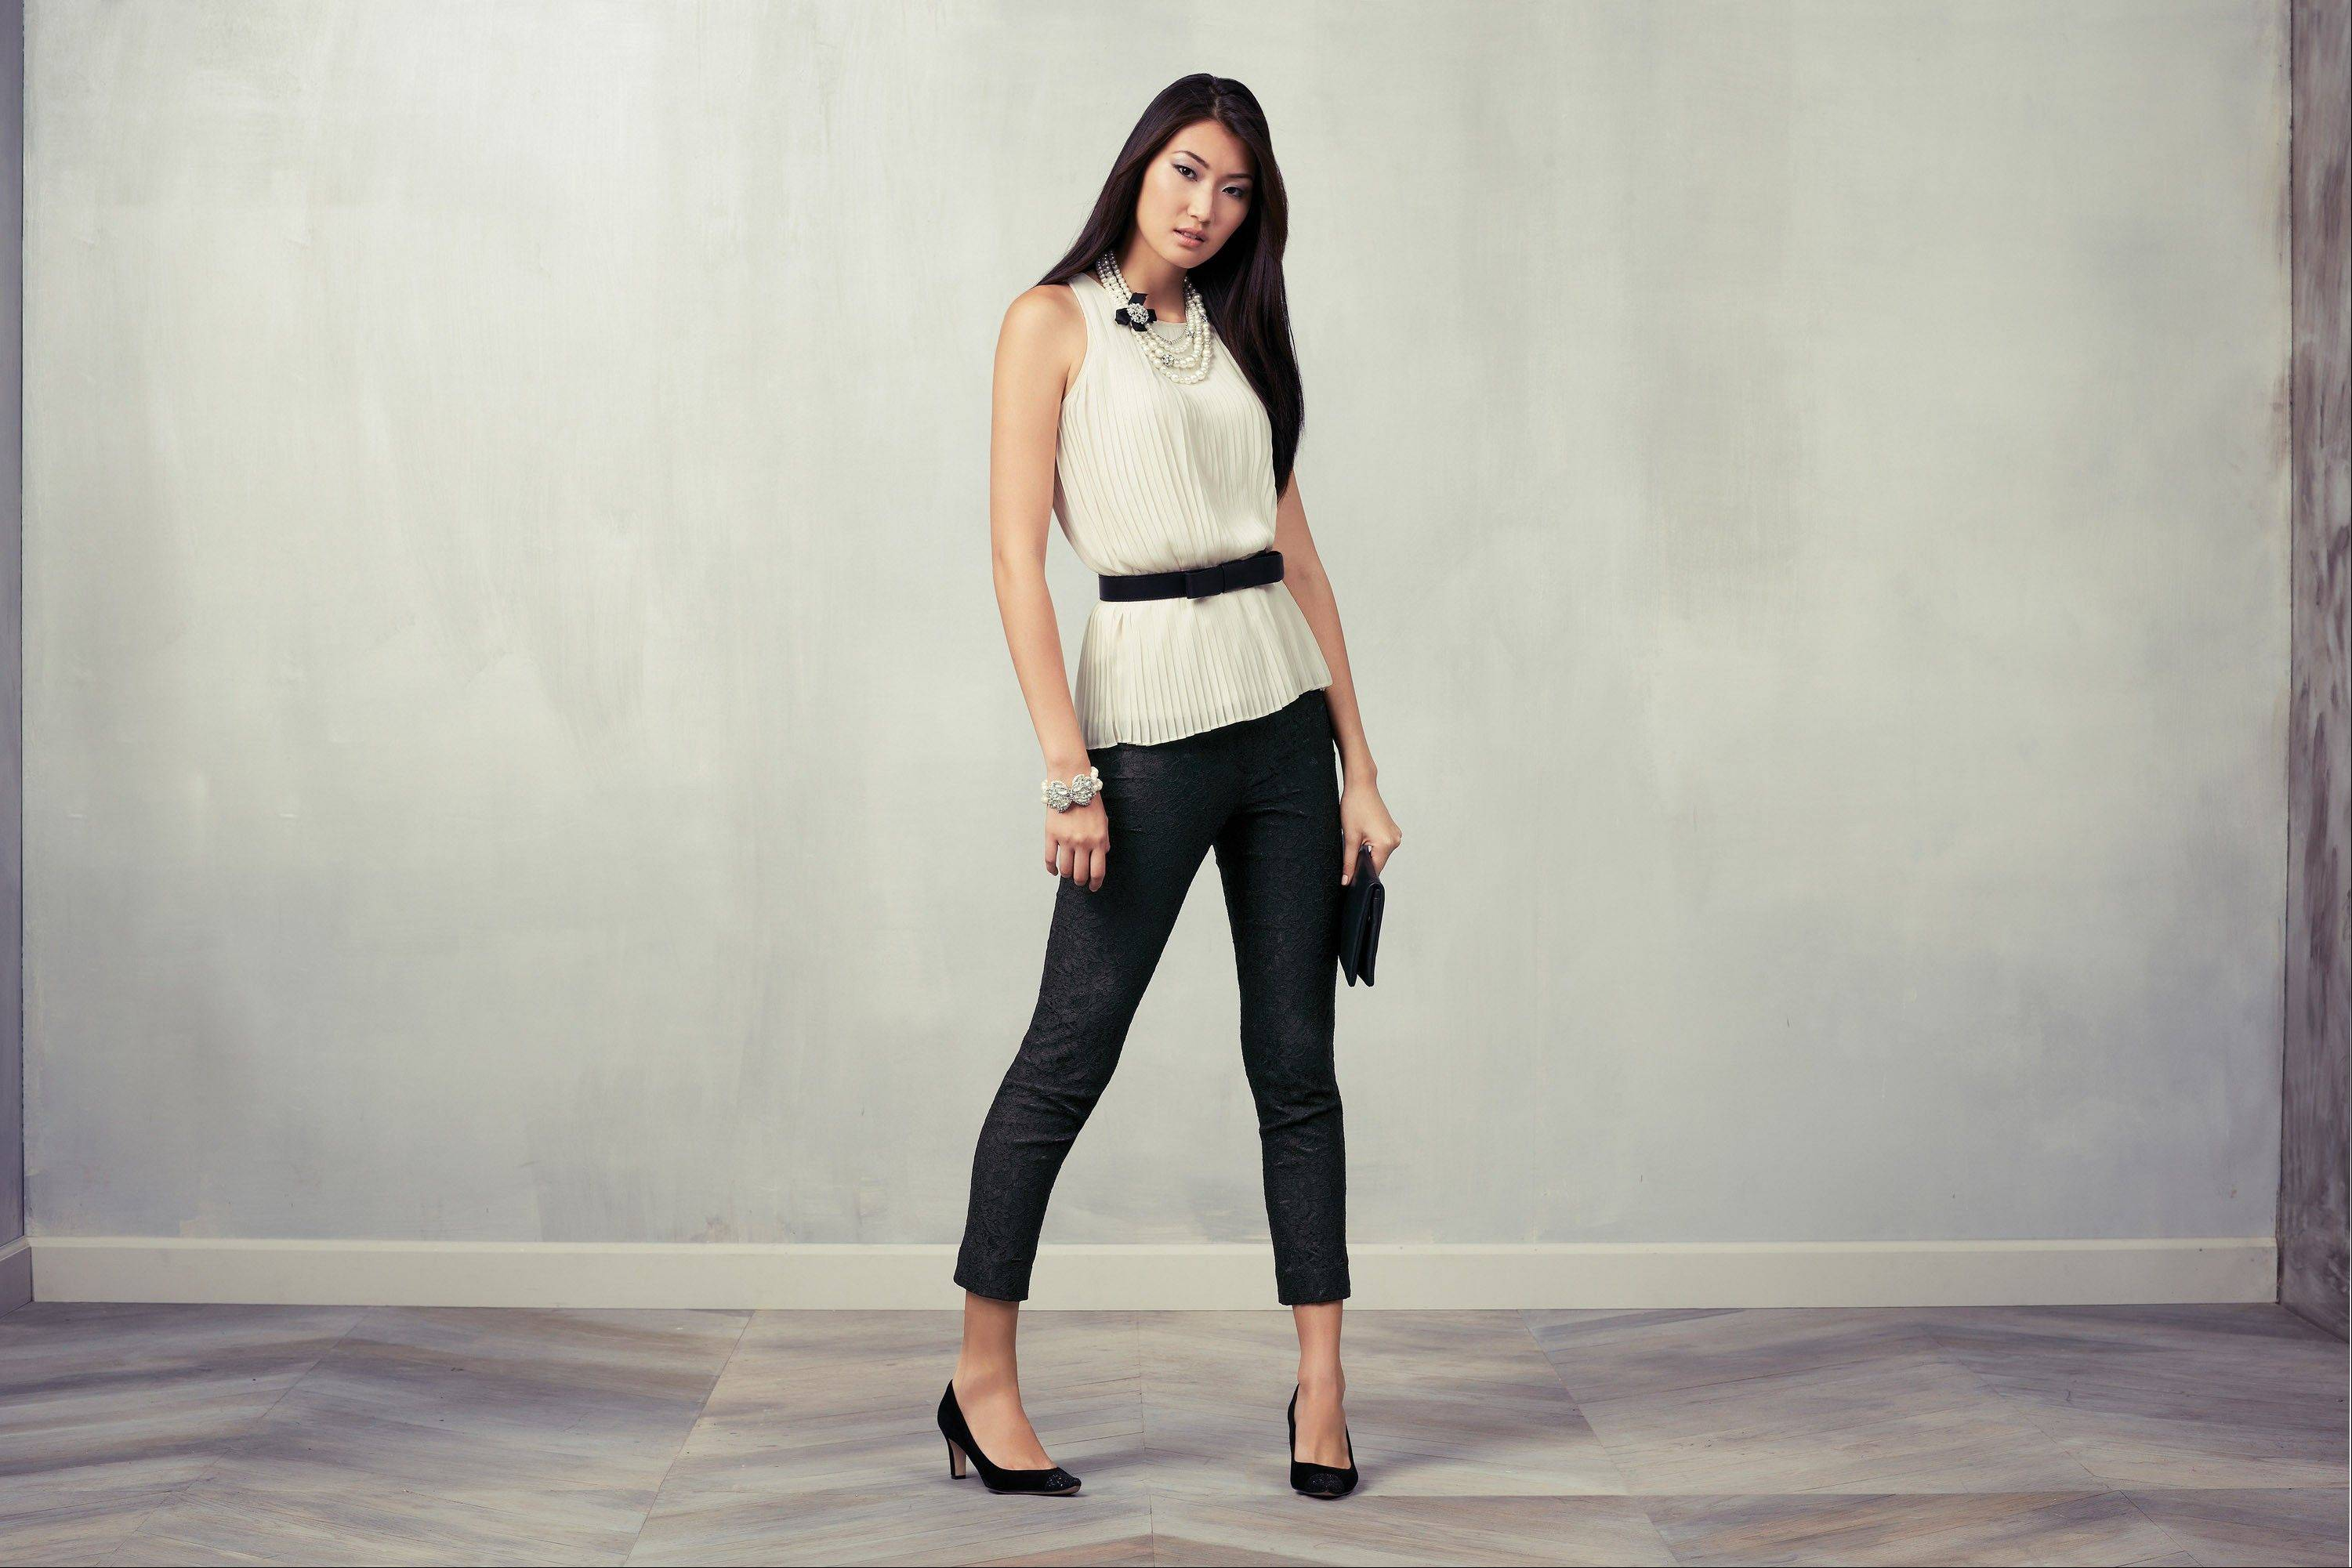 A model wears a white sleeveless blouse and black cigarette pants.